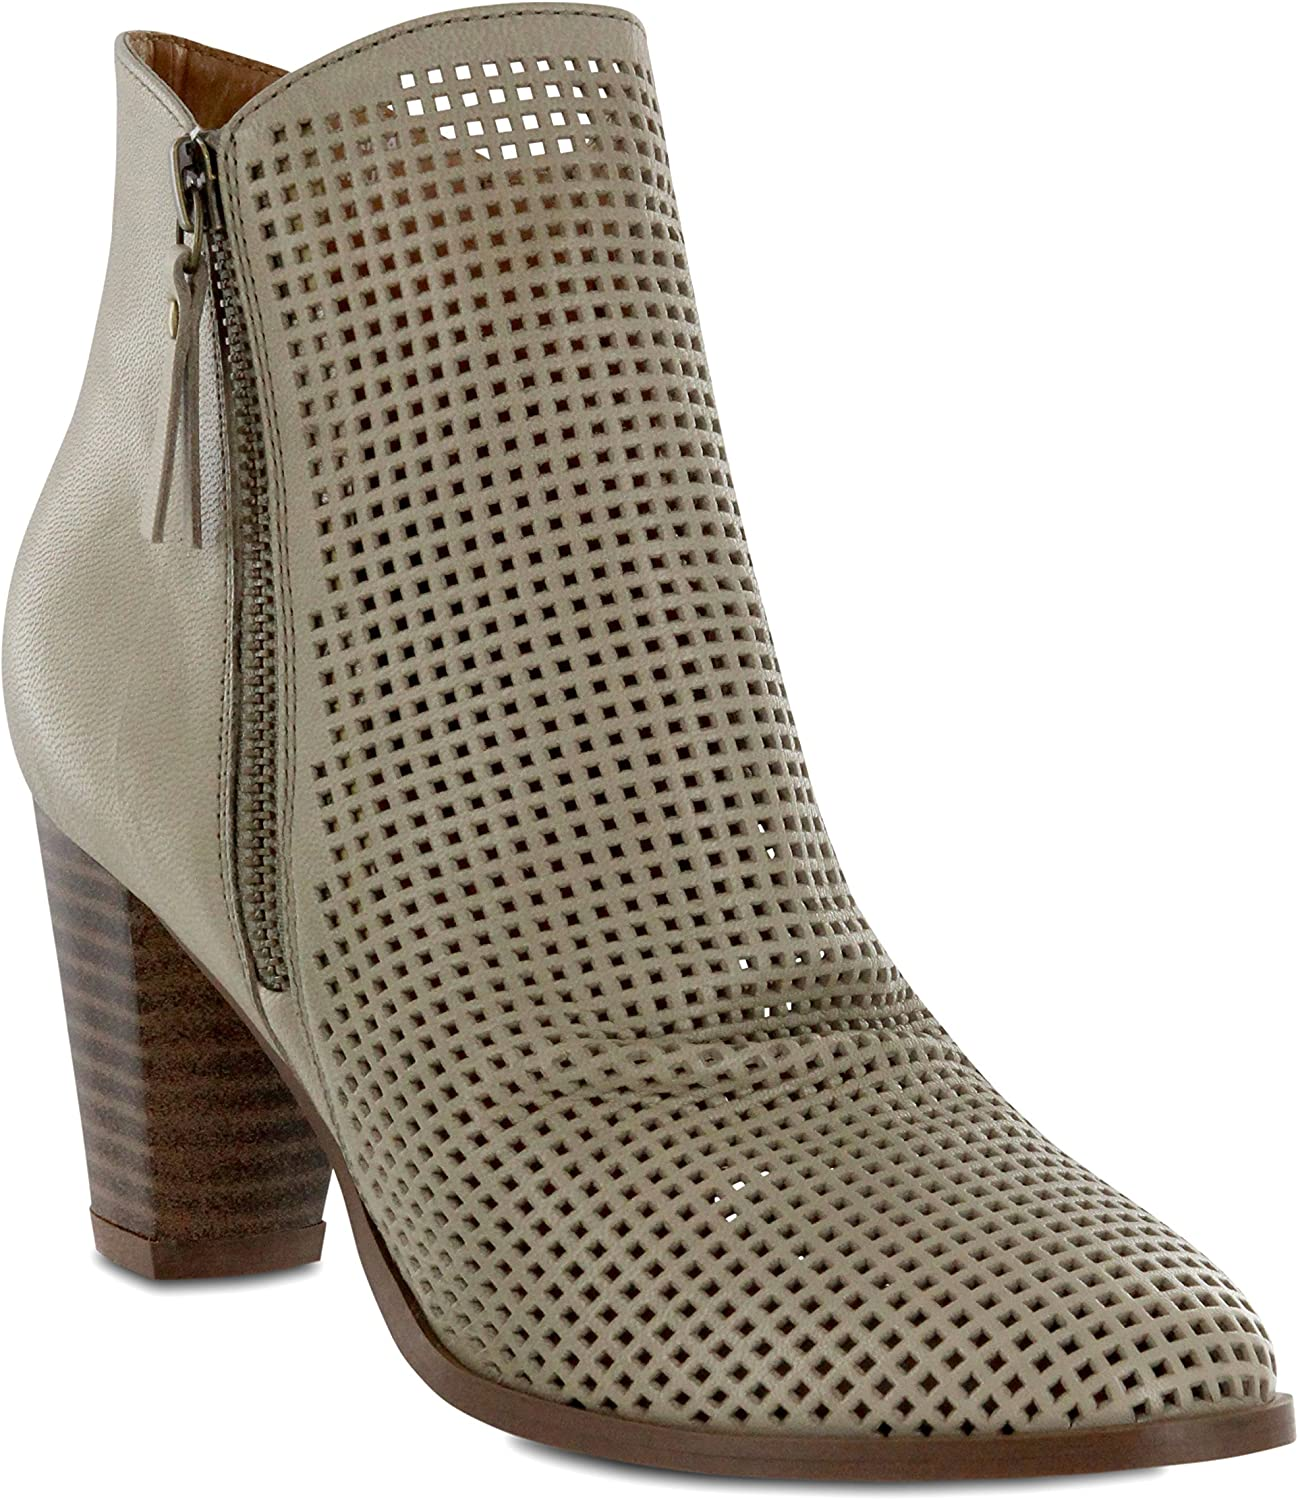 MIA Riya Women Boots, color  Taupe, Size  6